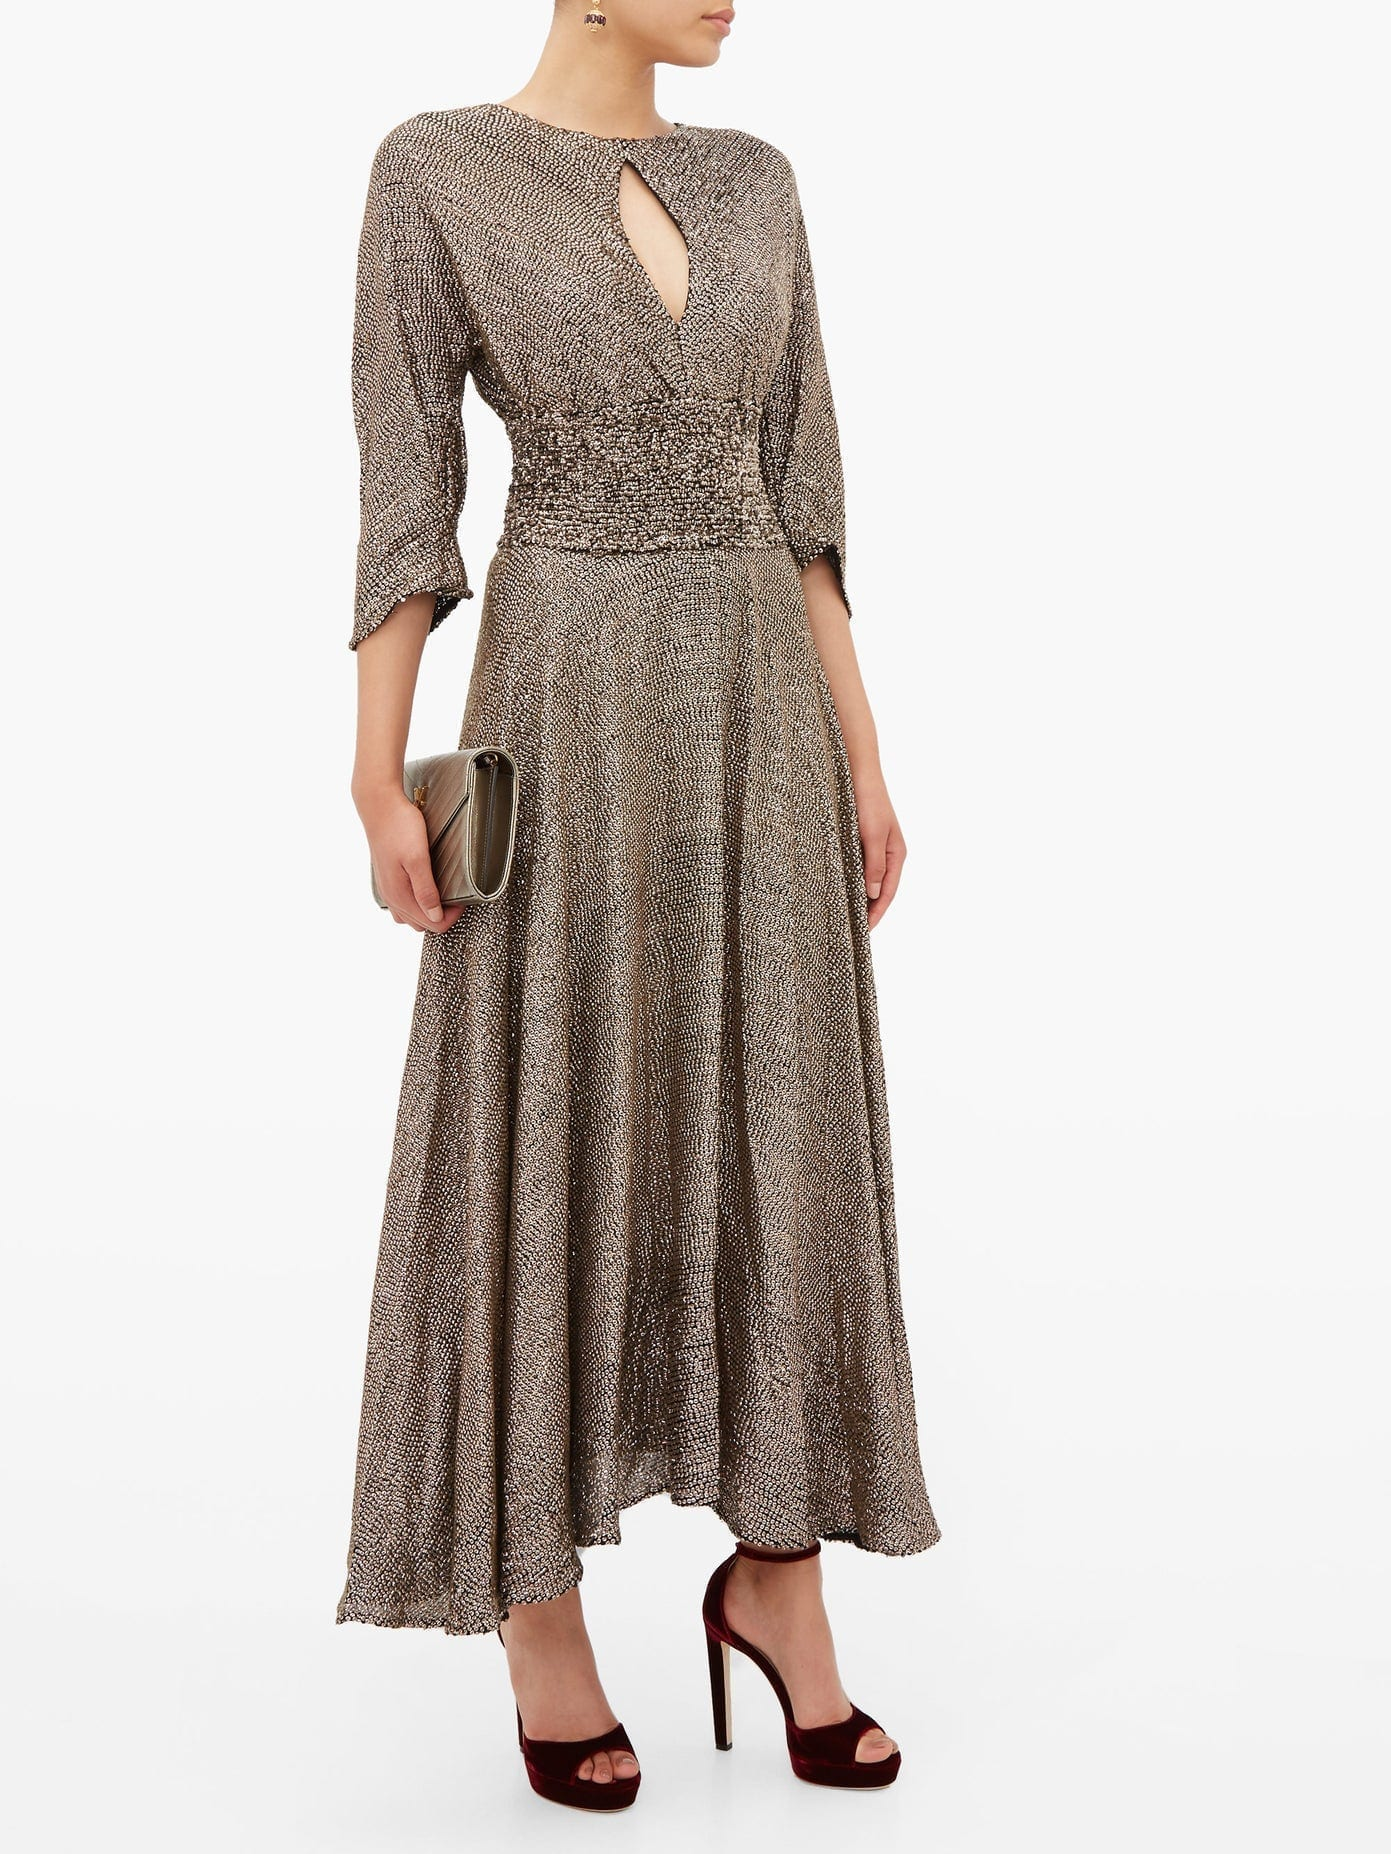 MARIA LUCIA HOHAN Kalea Sequinned Chiffon Midi Dress